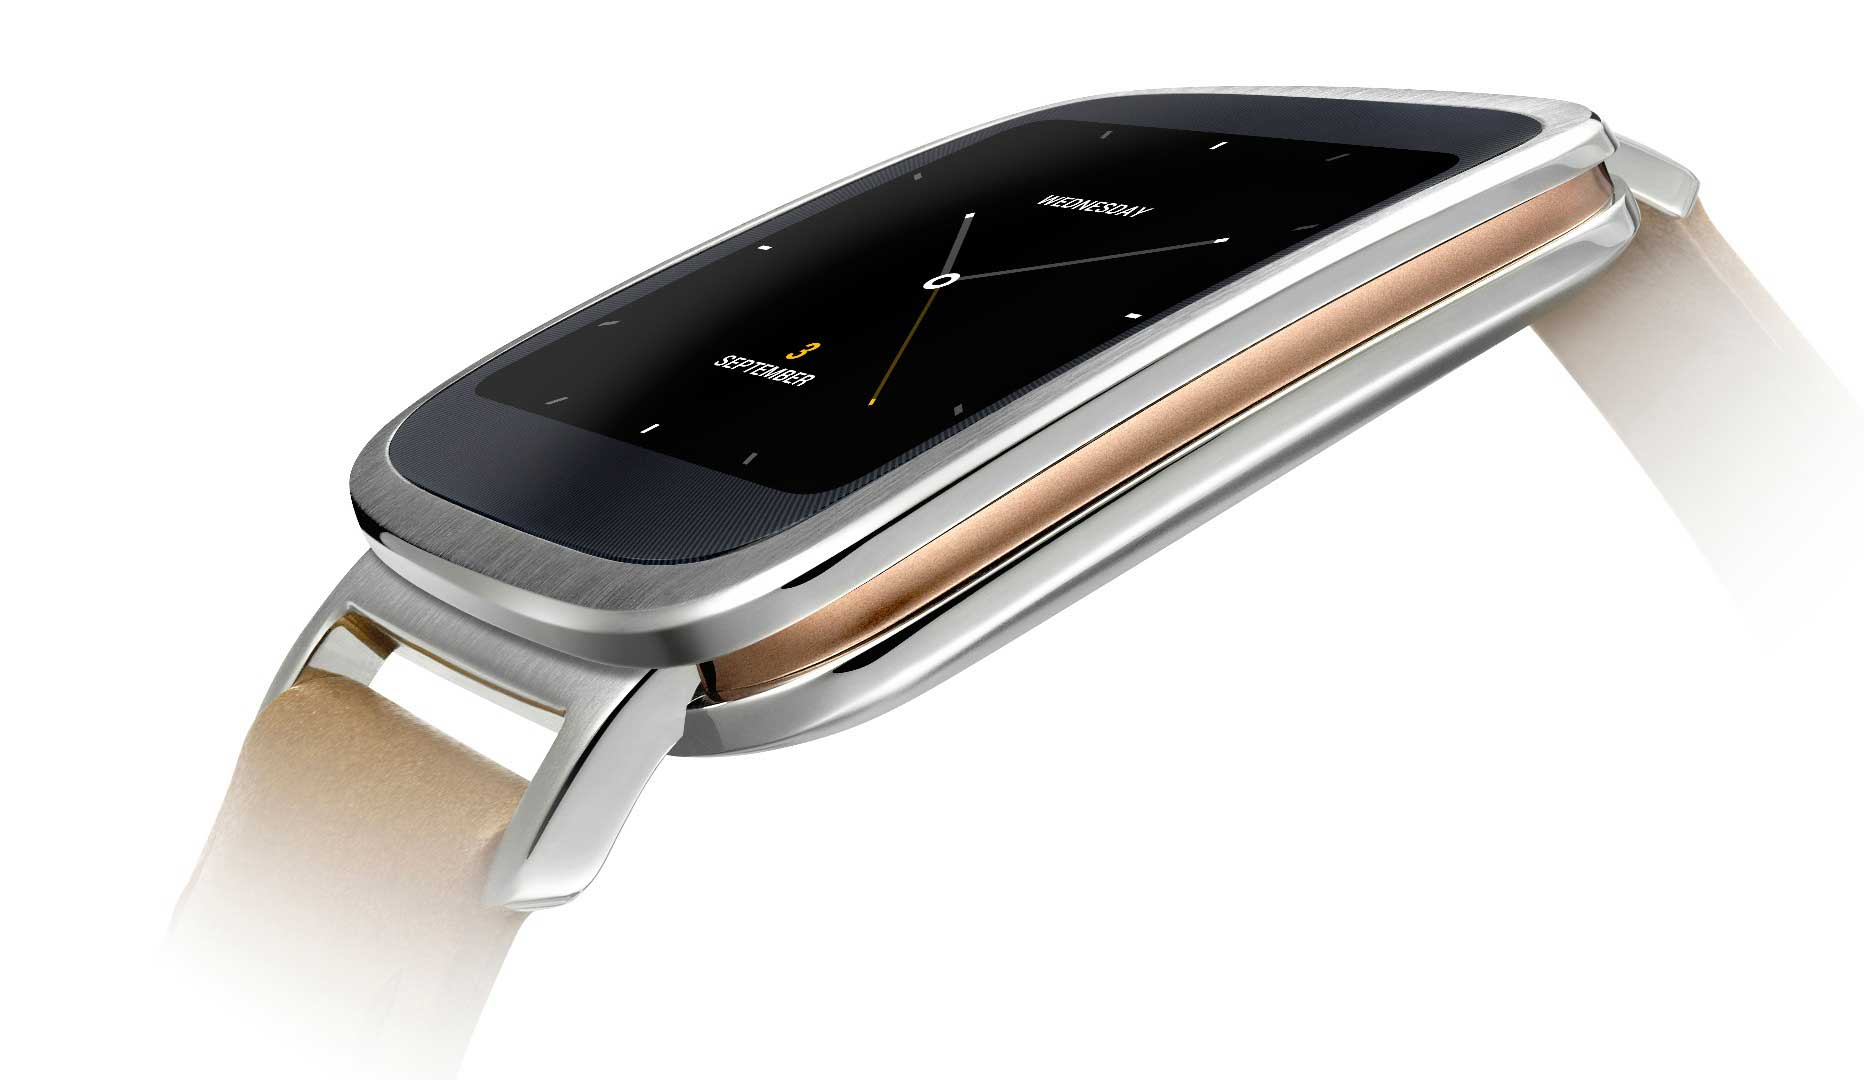 First Wearable Watchmaking unveiled at IFA 2014